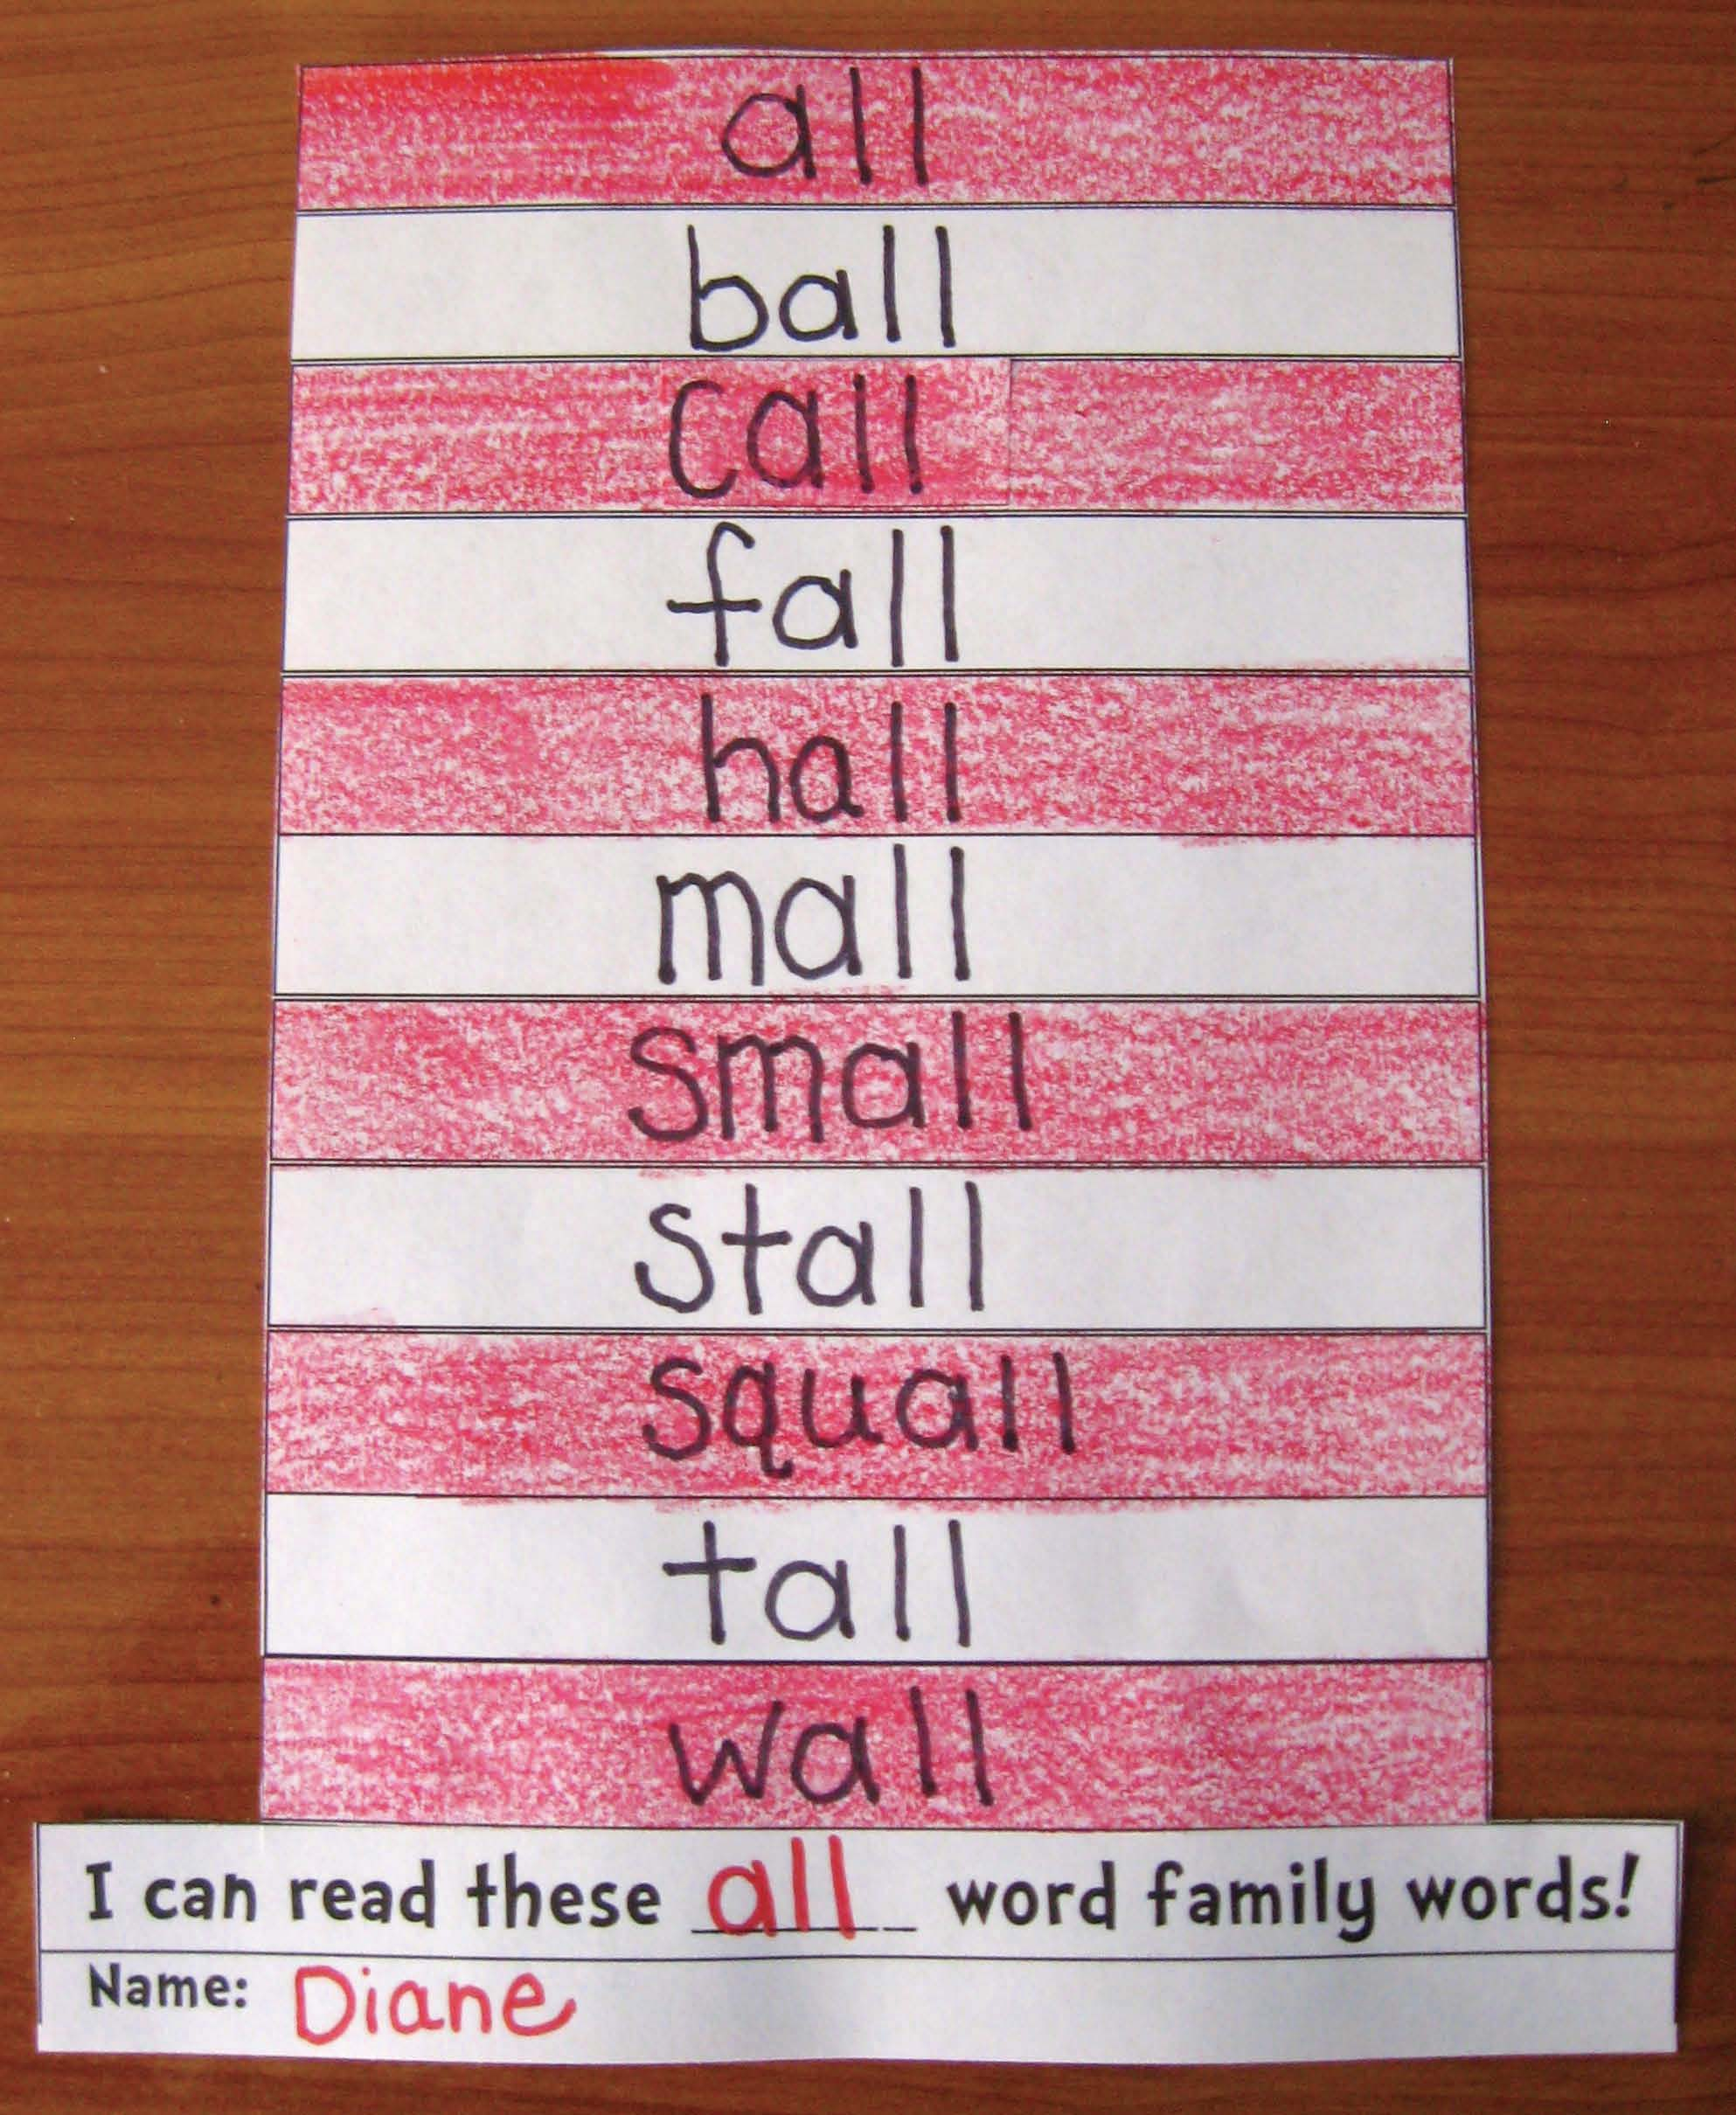 cat in the hat activities, cat in the hat games, cat in the hat crafts, seuss games, seuss crafts, seuss bulletin boards, seuss activities, word wall activities, word family activities, word family worksheets, word family games,